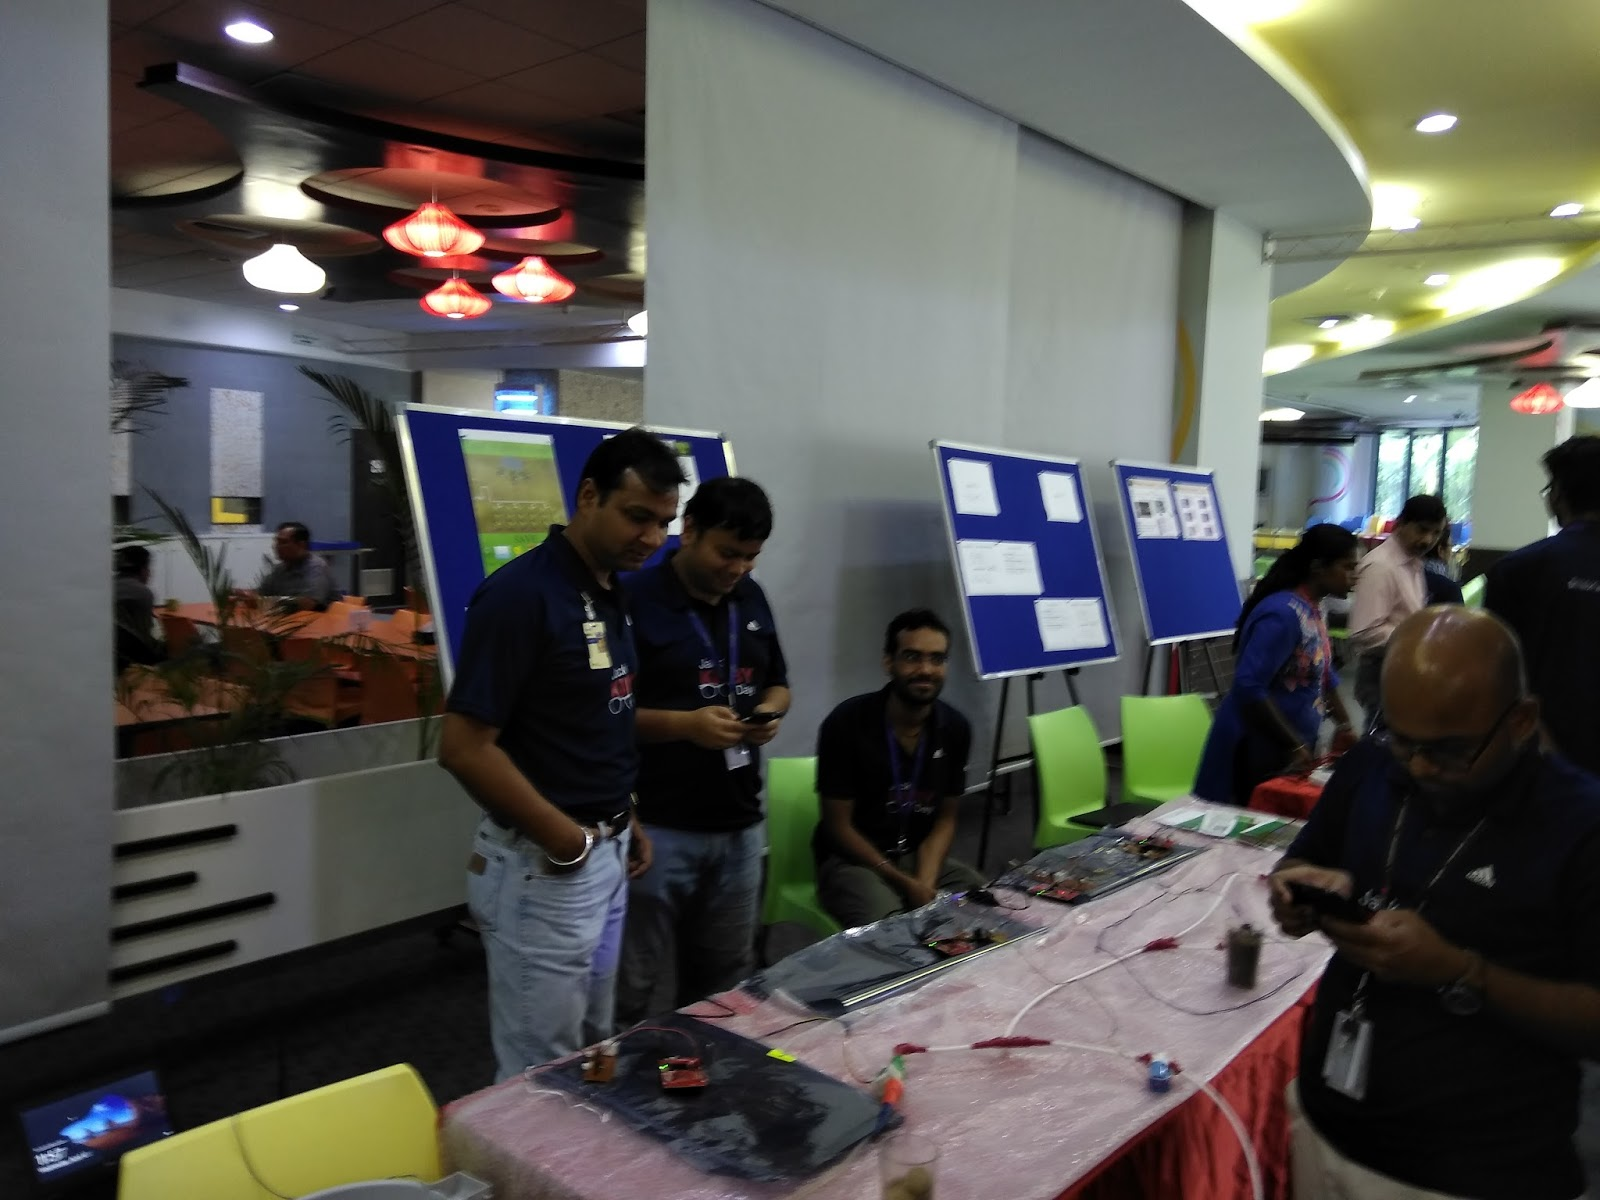 Silicon village non invasive blood sugar prediction wins do it texas instruments ti india has hosted the diy with ti event designed to recognize and encourage ti hobbyists who innovate in their spare time using ti solutioingenieria Image collections